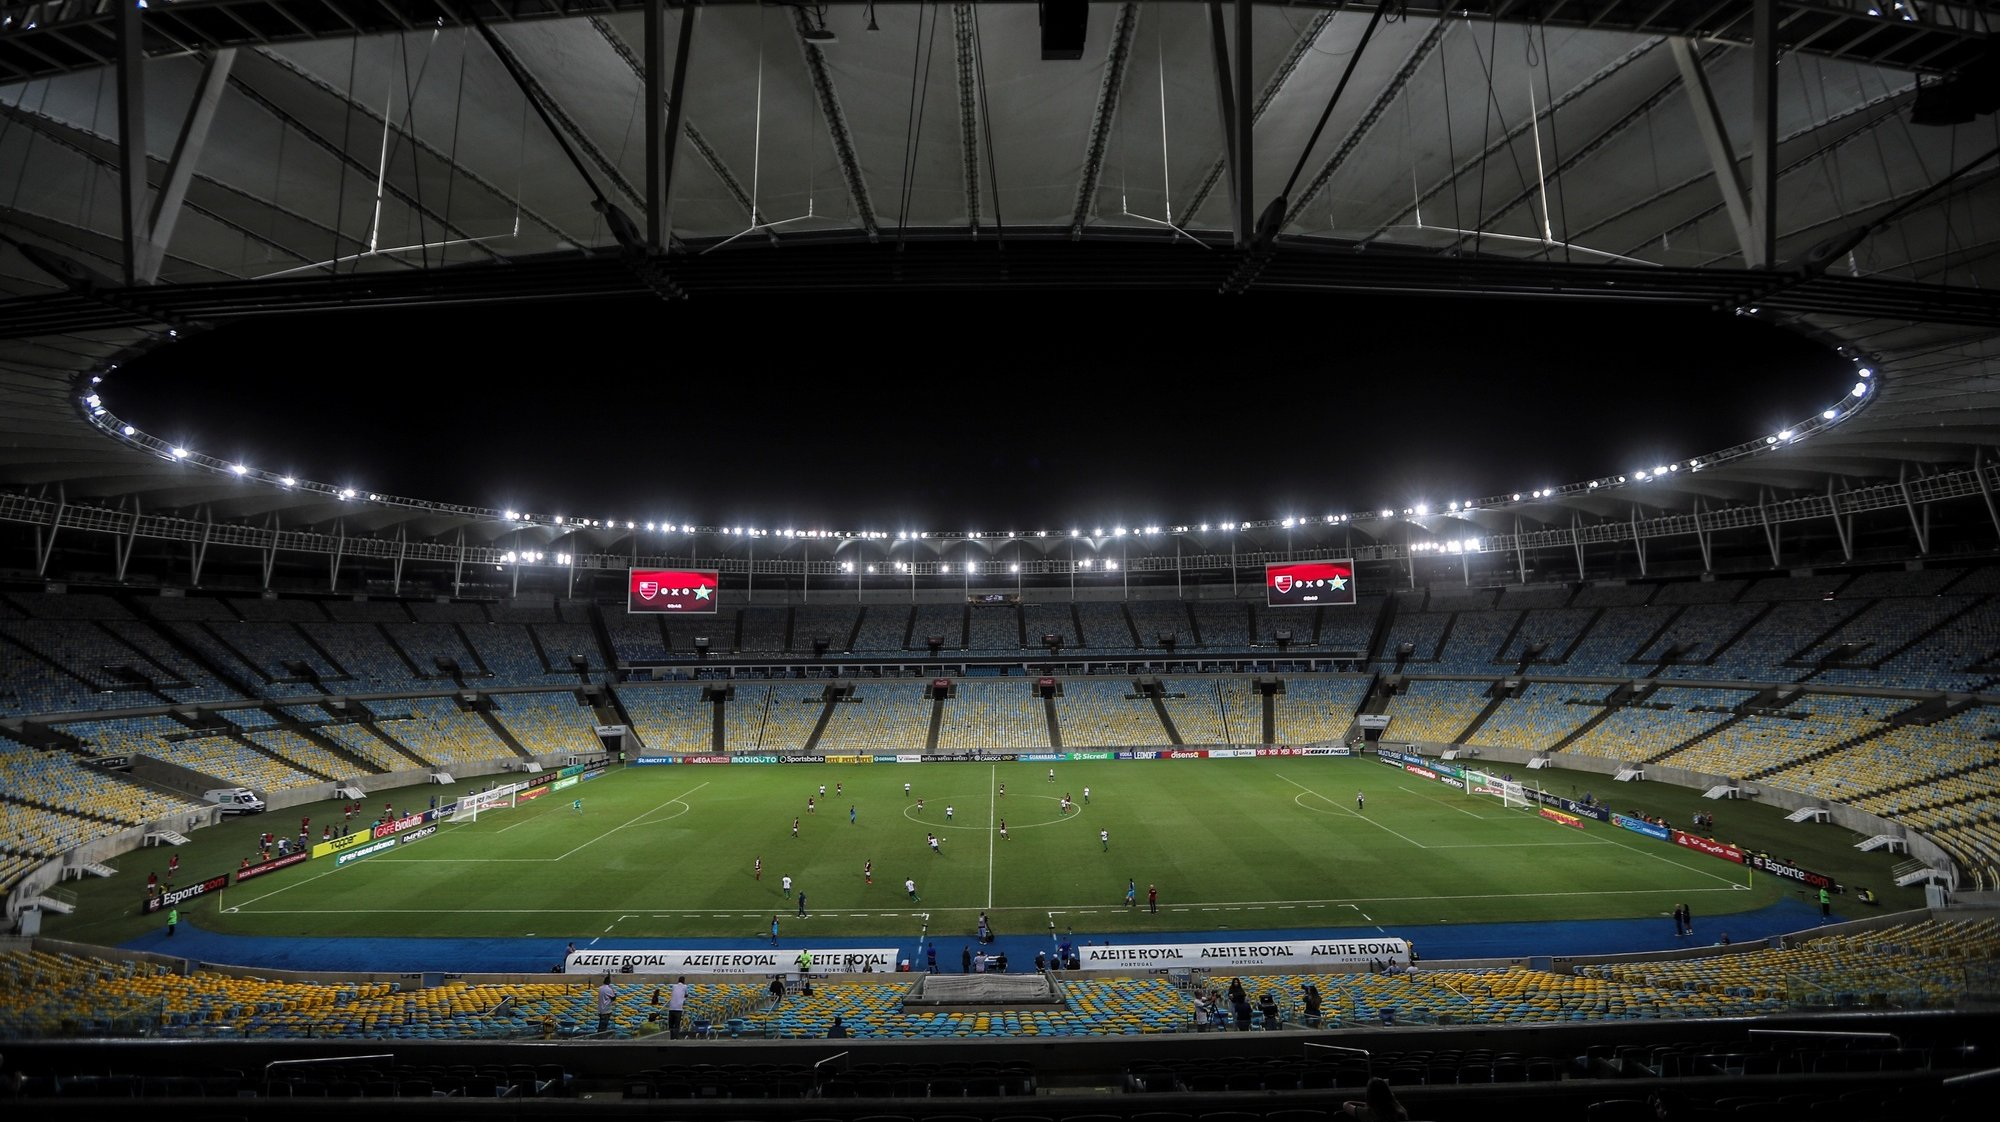 epa08294895 General view of the Maracana without fans during the game between Flamengo Vs. Portuguesa for the Rio de Janeiro soccer championship, in the empty Maracana stadium, in Rio de Janeiro, Brazil, 14 March 2020. The soccer matches scheduled for today and tomorrow in most Brazilian stadiums, including Rio de Janeiro and Sao Paulo, will be behind closed doors, over fears that large public gatherings will facilitate the expansion of the coronavirus in Brazil.  EPA/Antonio Lacerda